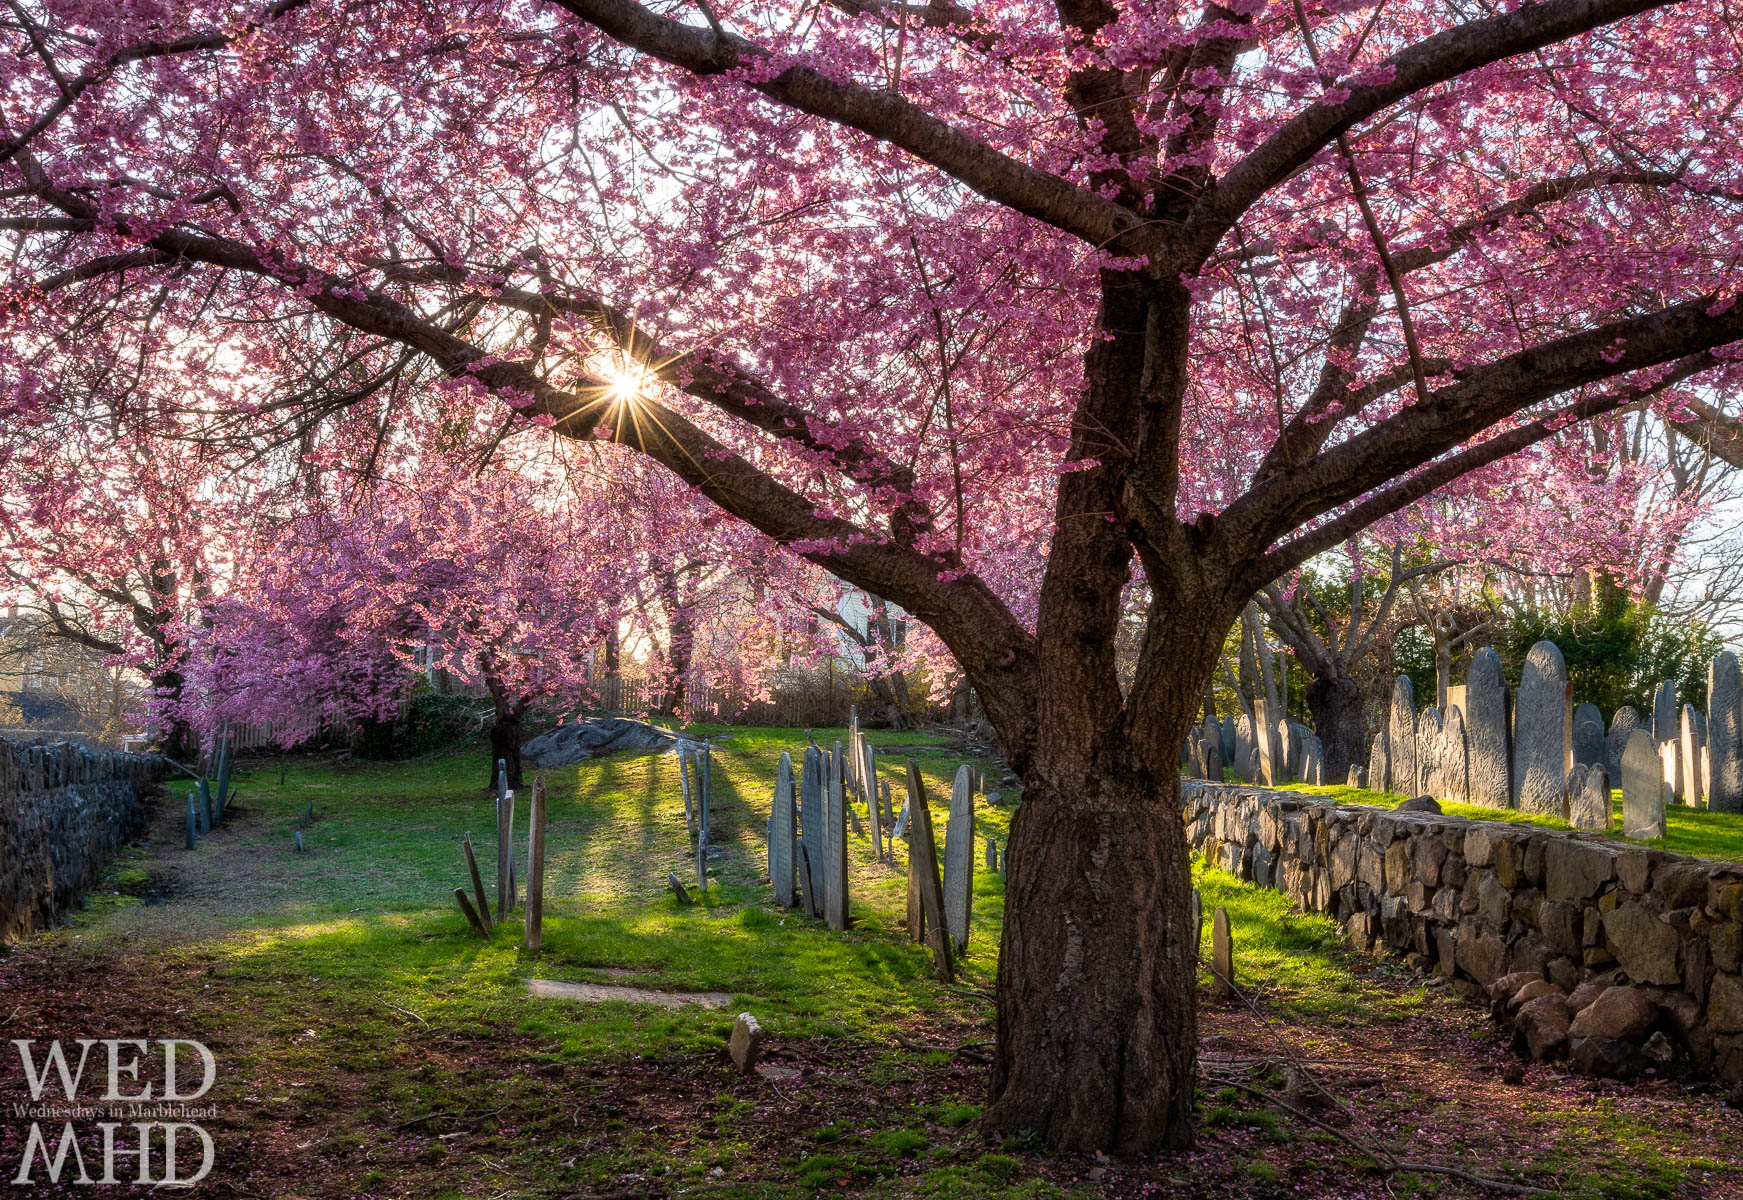 Nothing solidifies the feeling that spring is in the air like capturing a sun star through the branches of a cherry blossom tree at the Harris Street cemetery